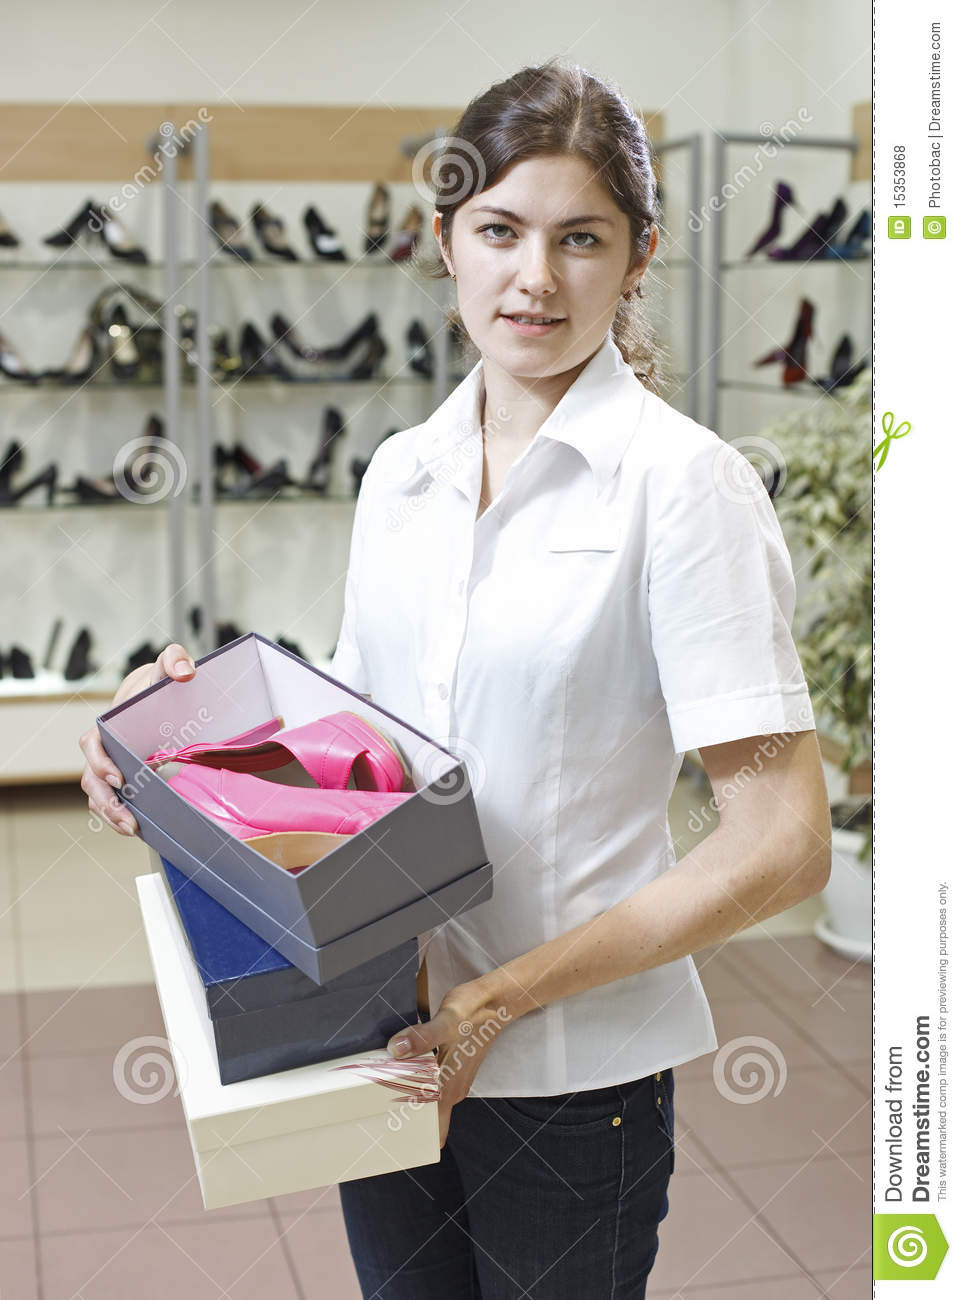 shop assistant in shoe store royalty free stock photos   image    shop assistant in shoe store